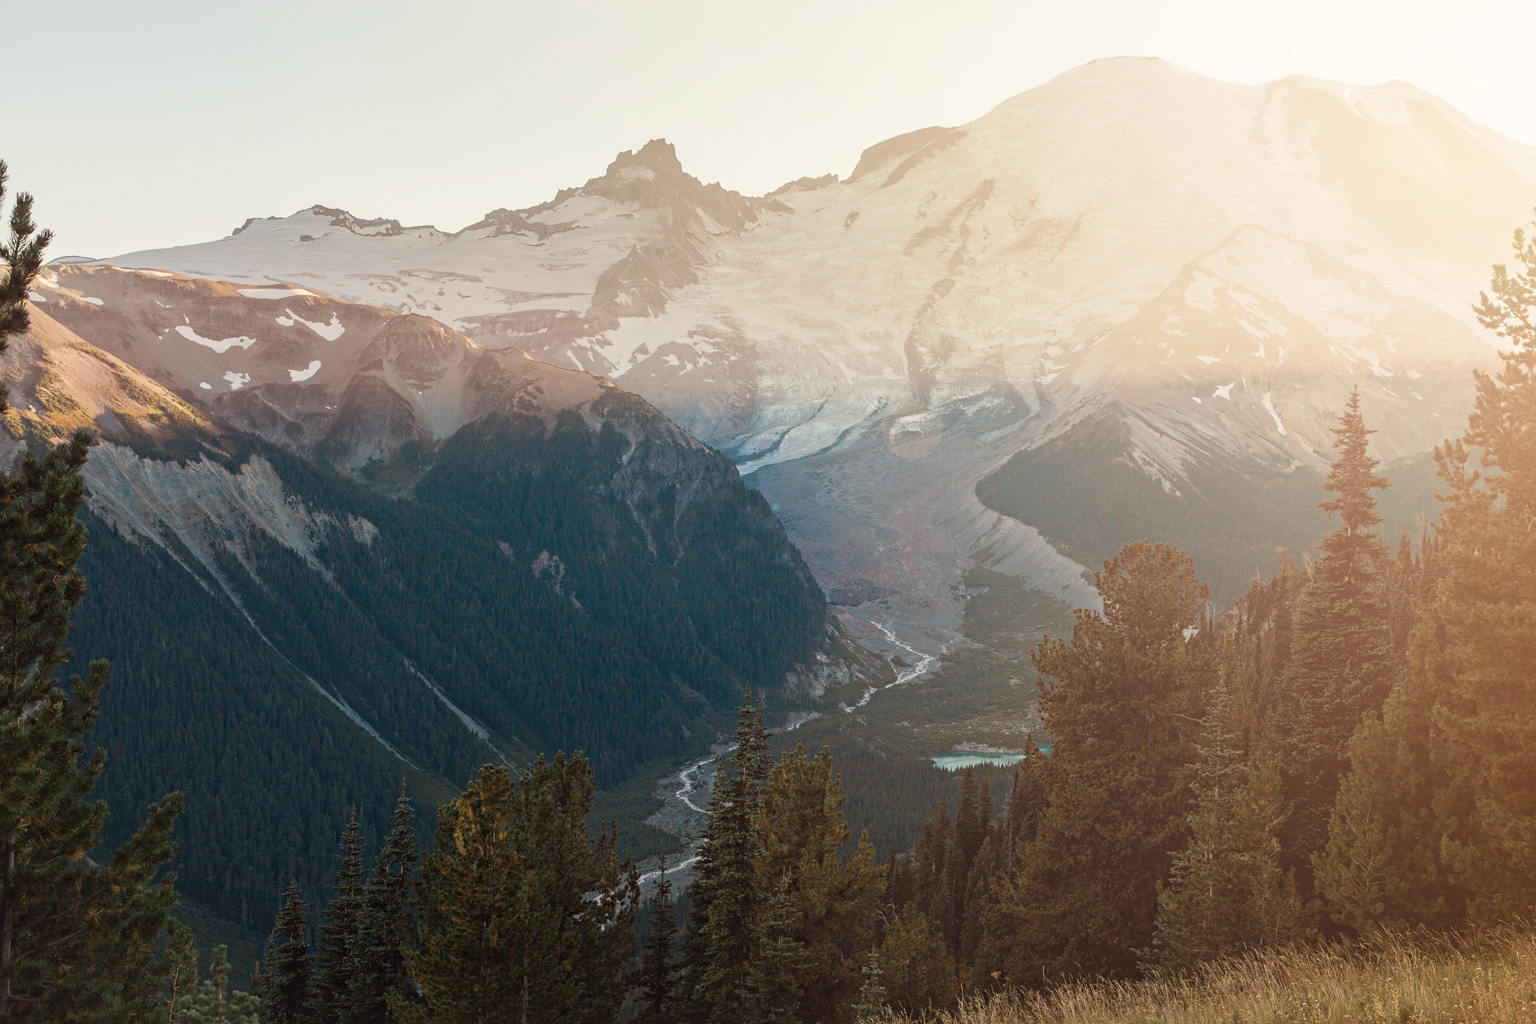 CindyGiovagnoli_Mount_Rainier_National_Park_Washington-014.jpg